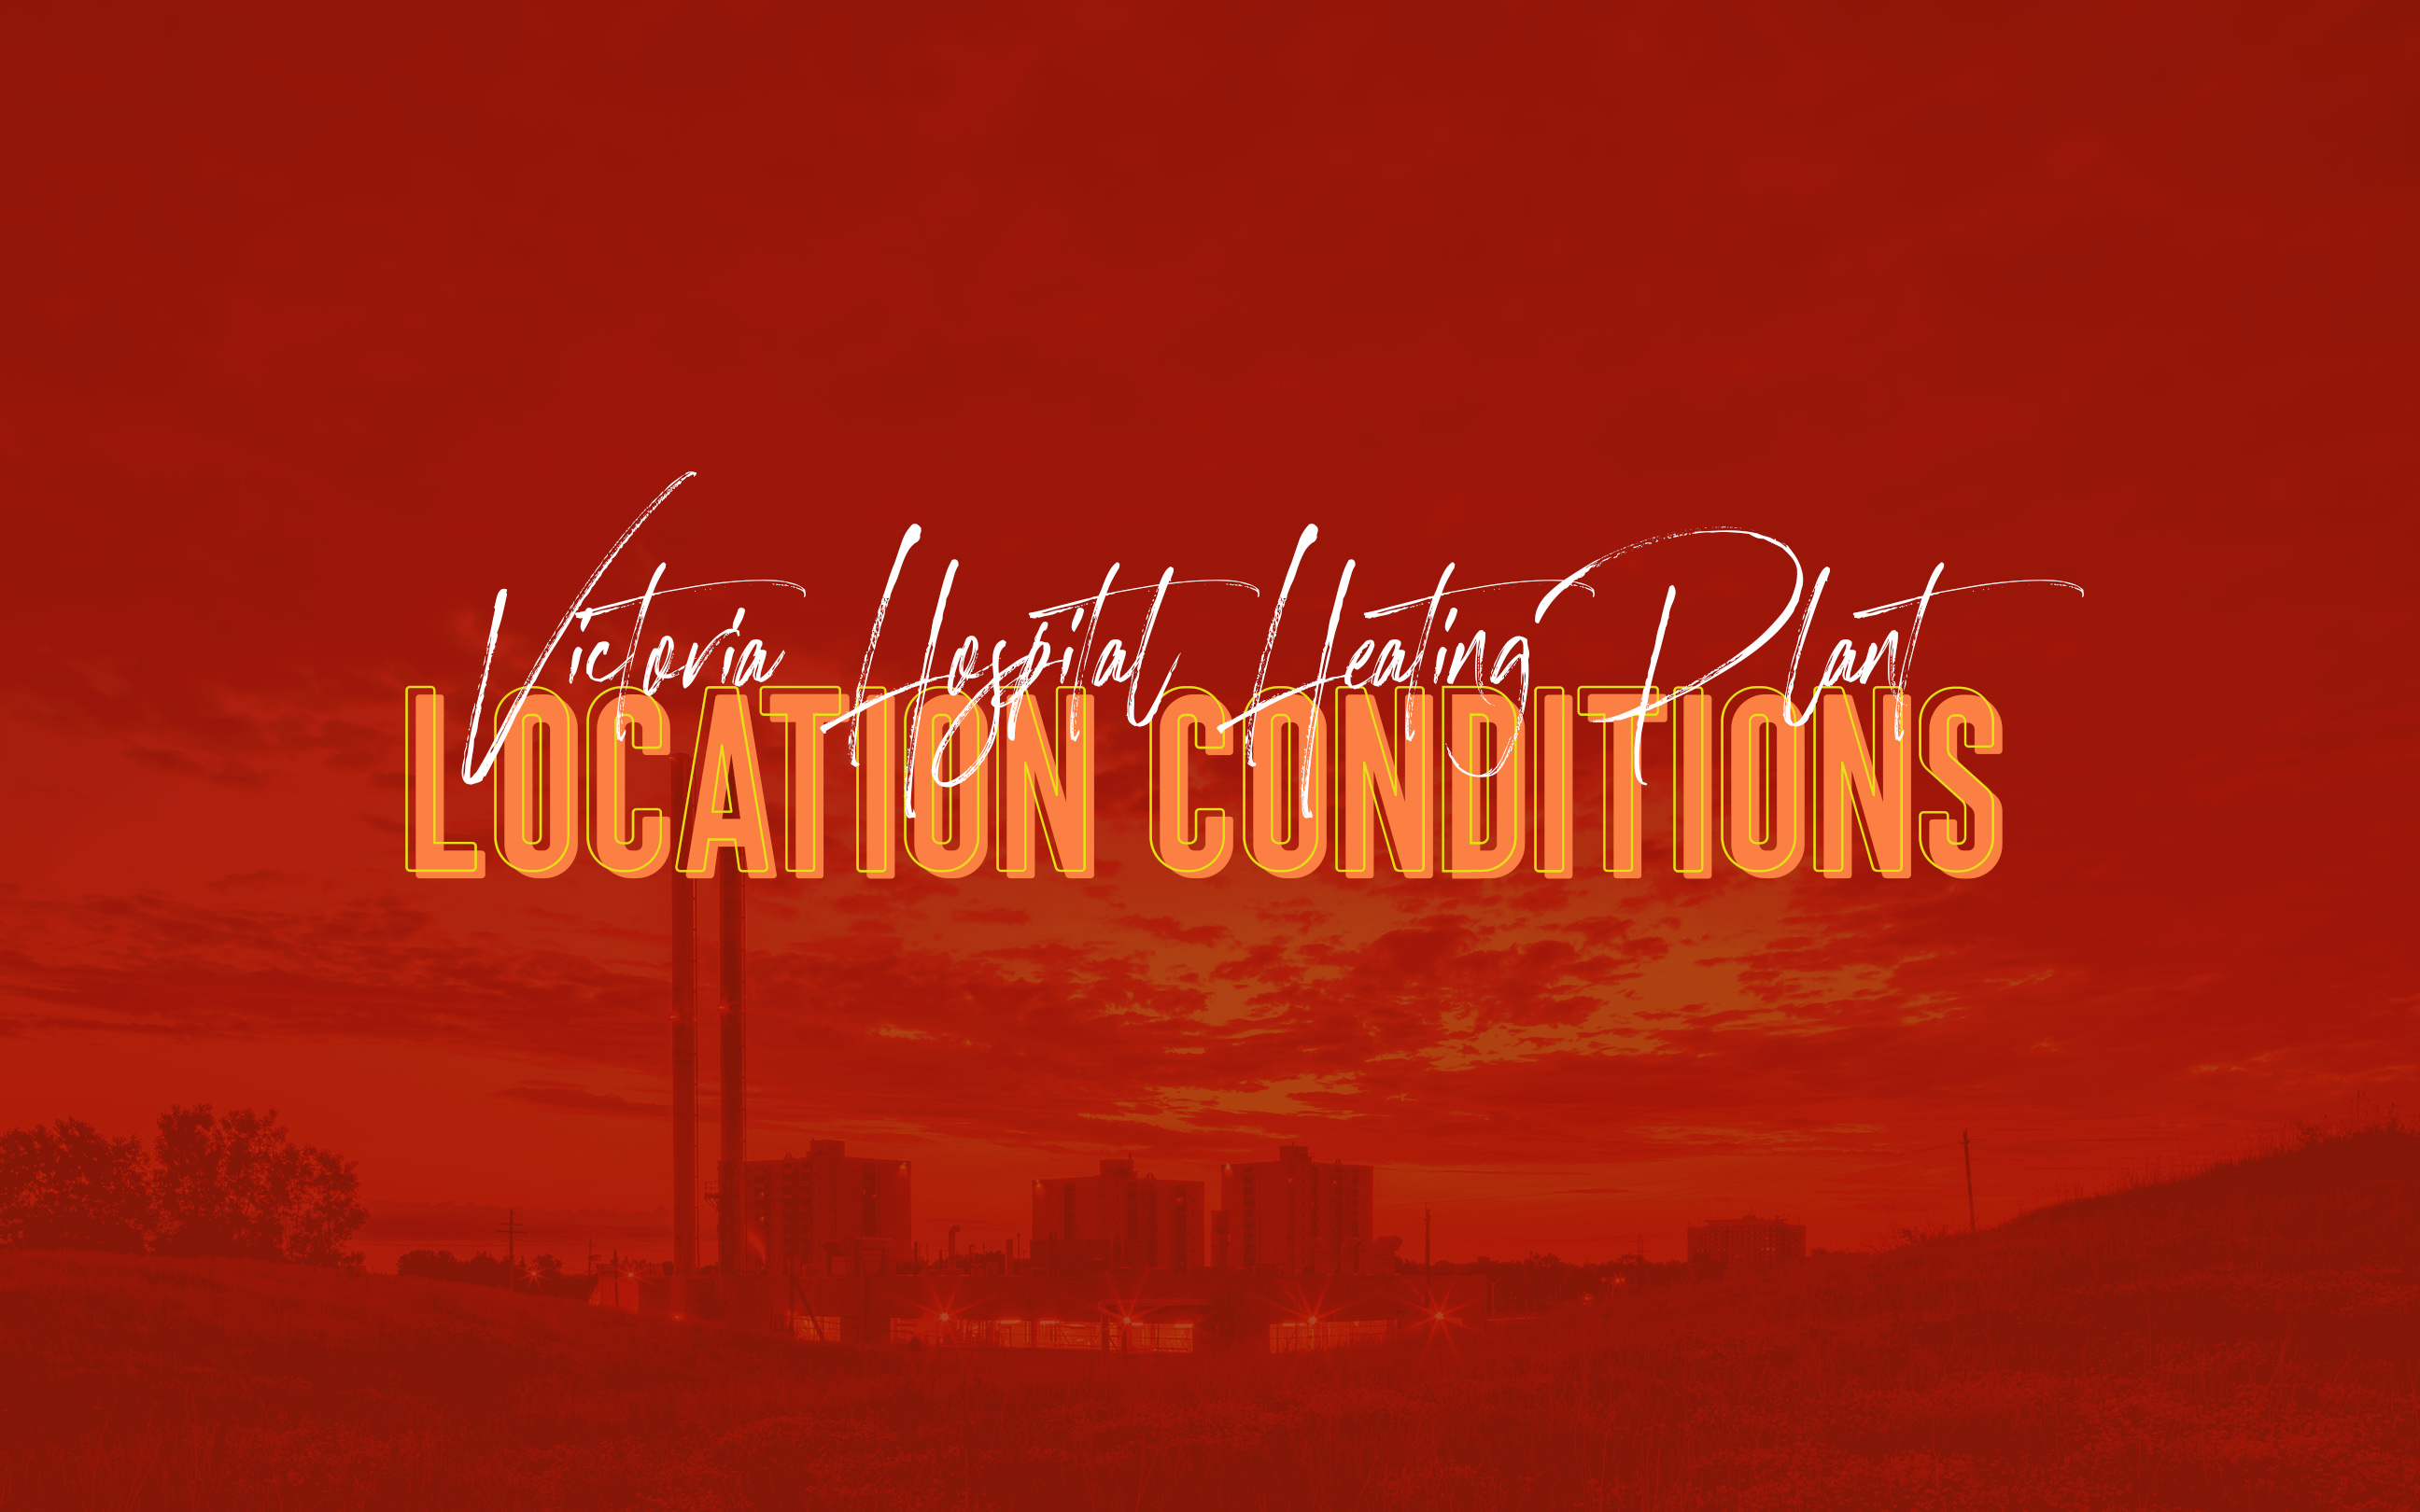 Location Conditions Tip using Story at Victoria Hospital Heating Plant